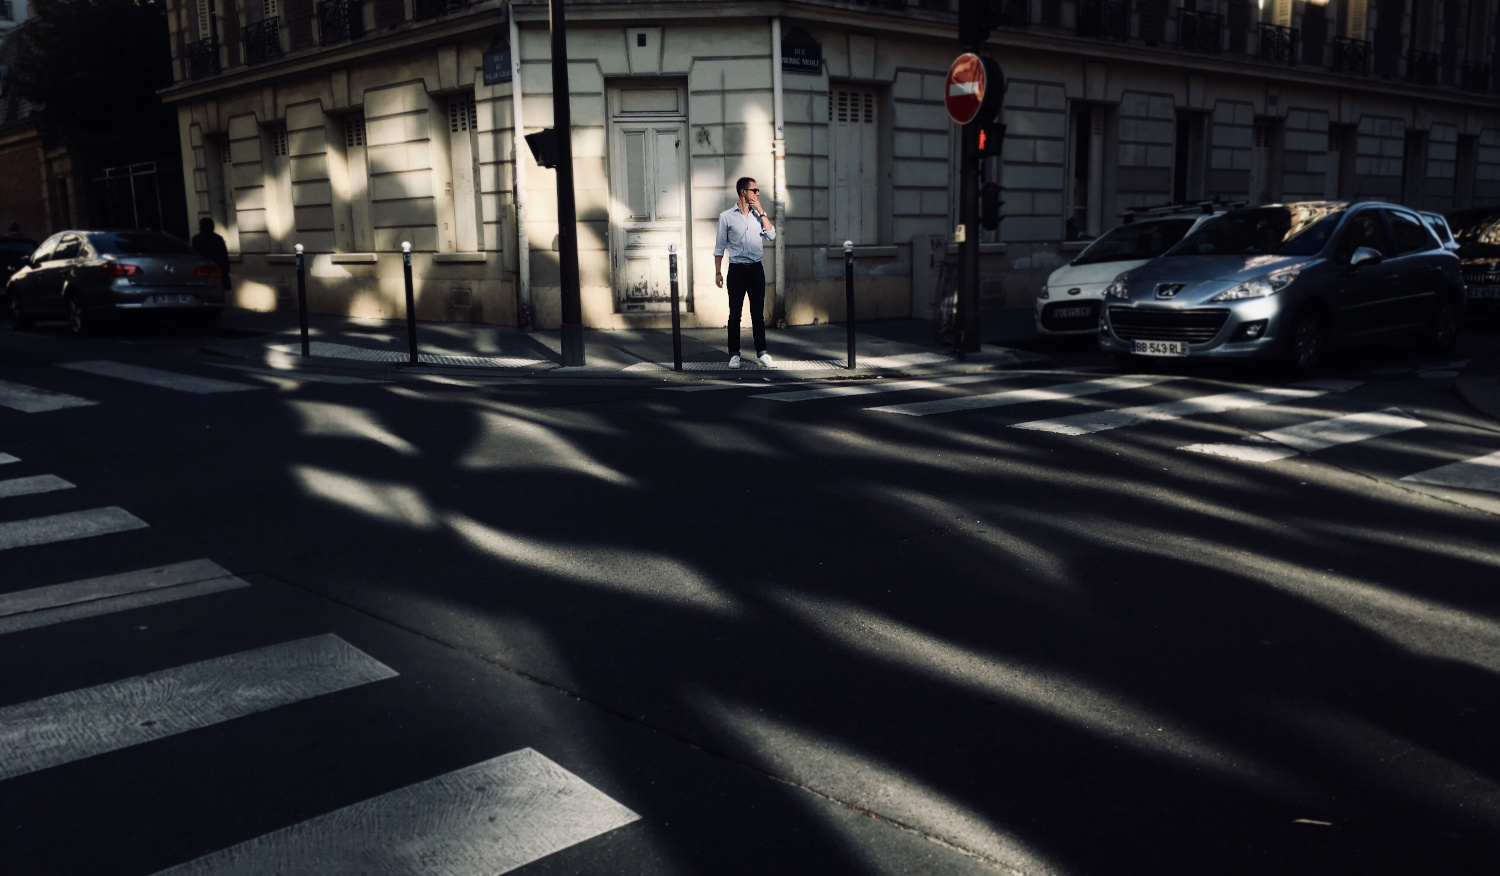 paris sunlights